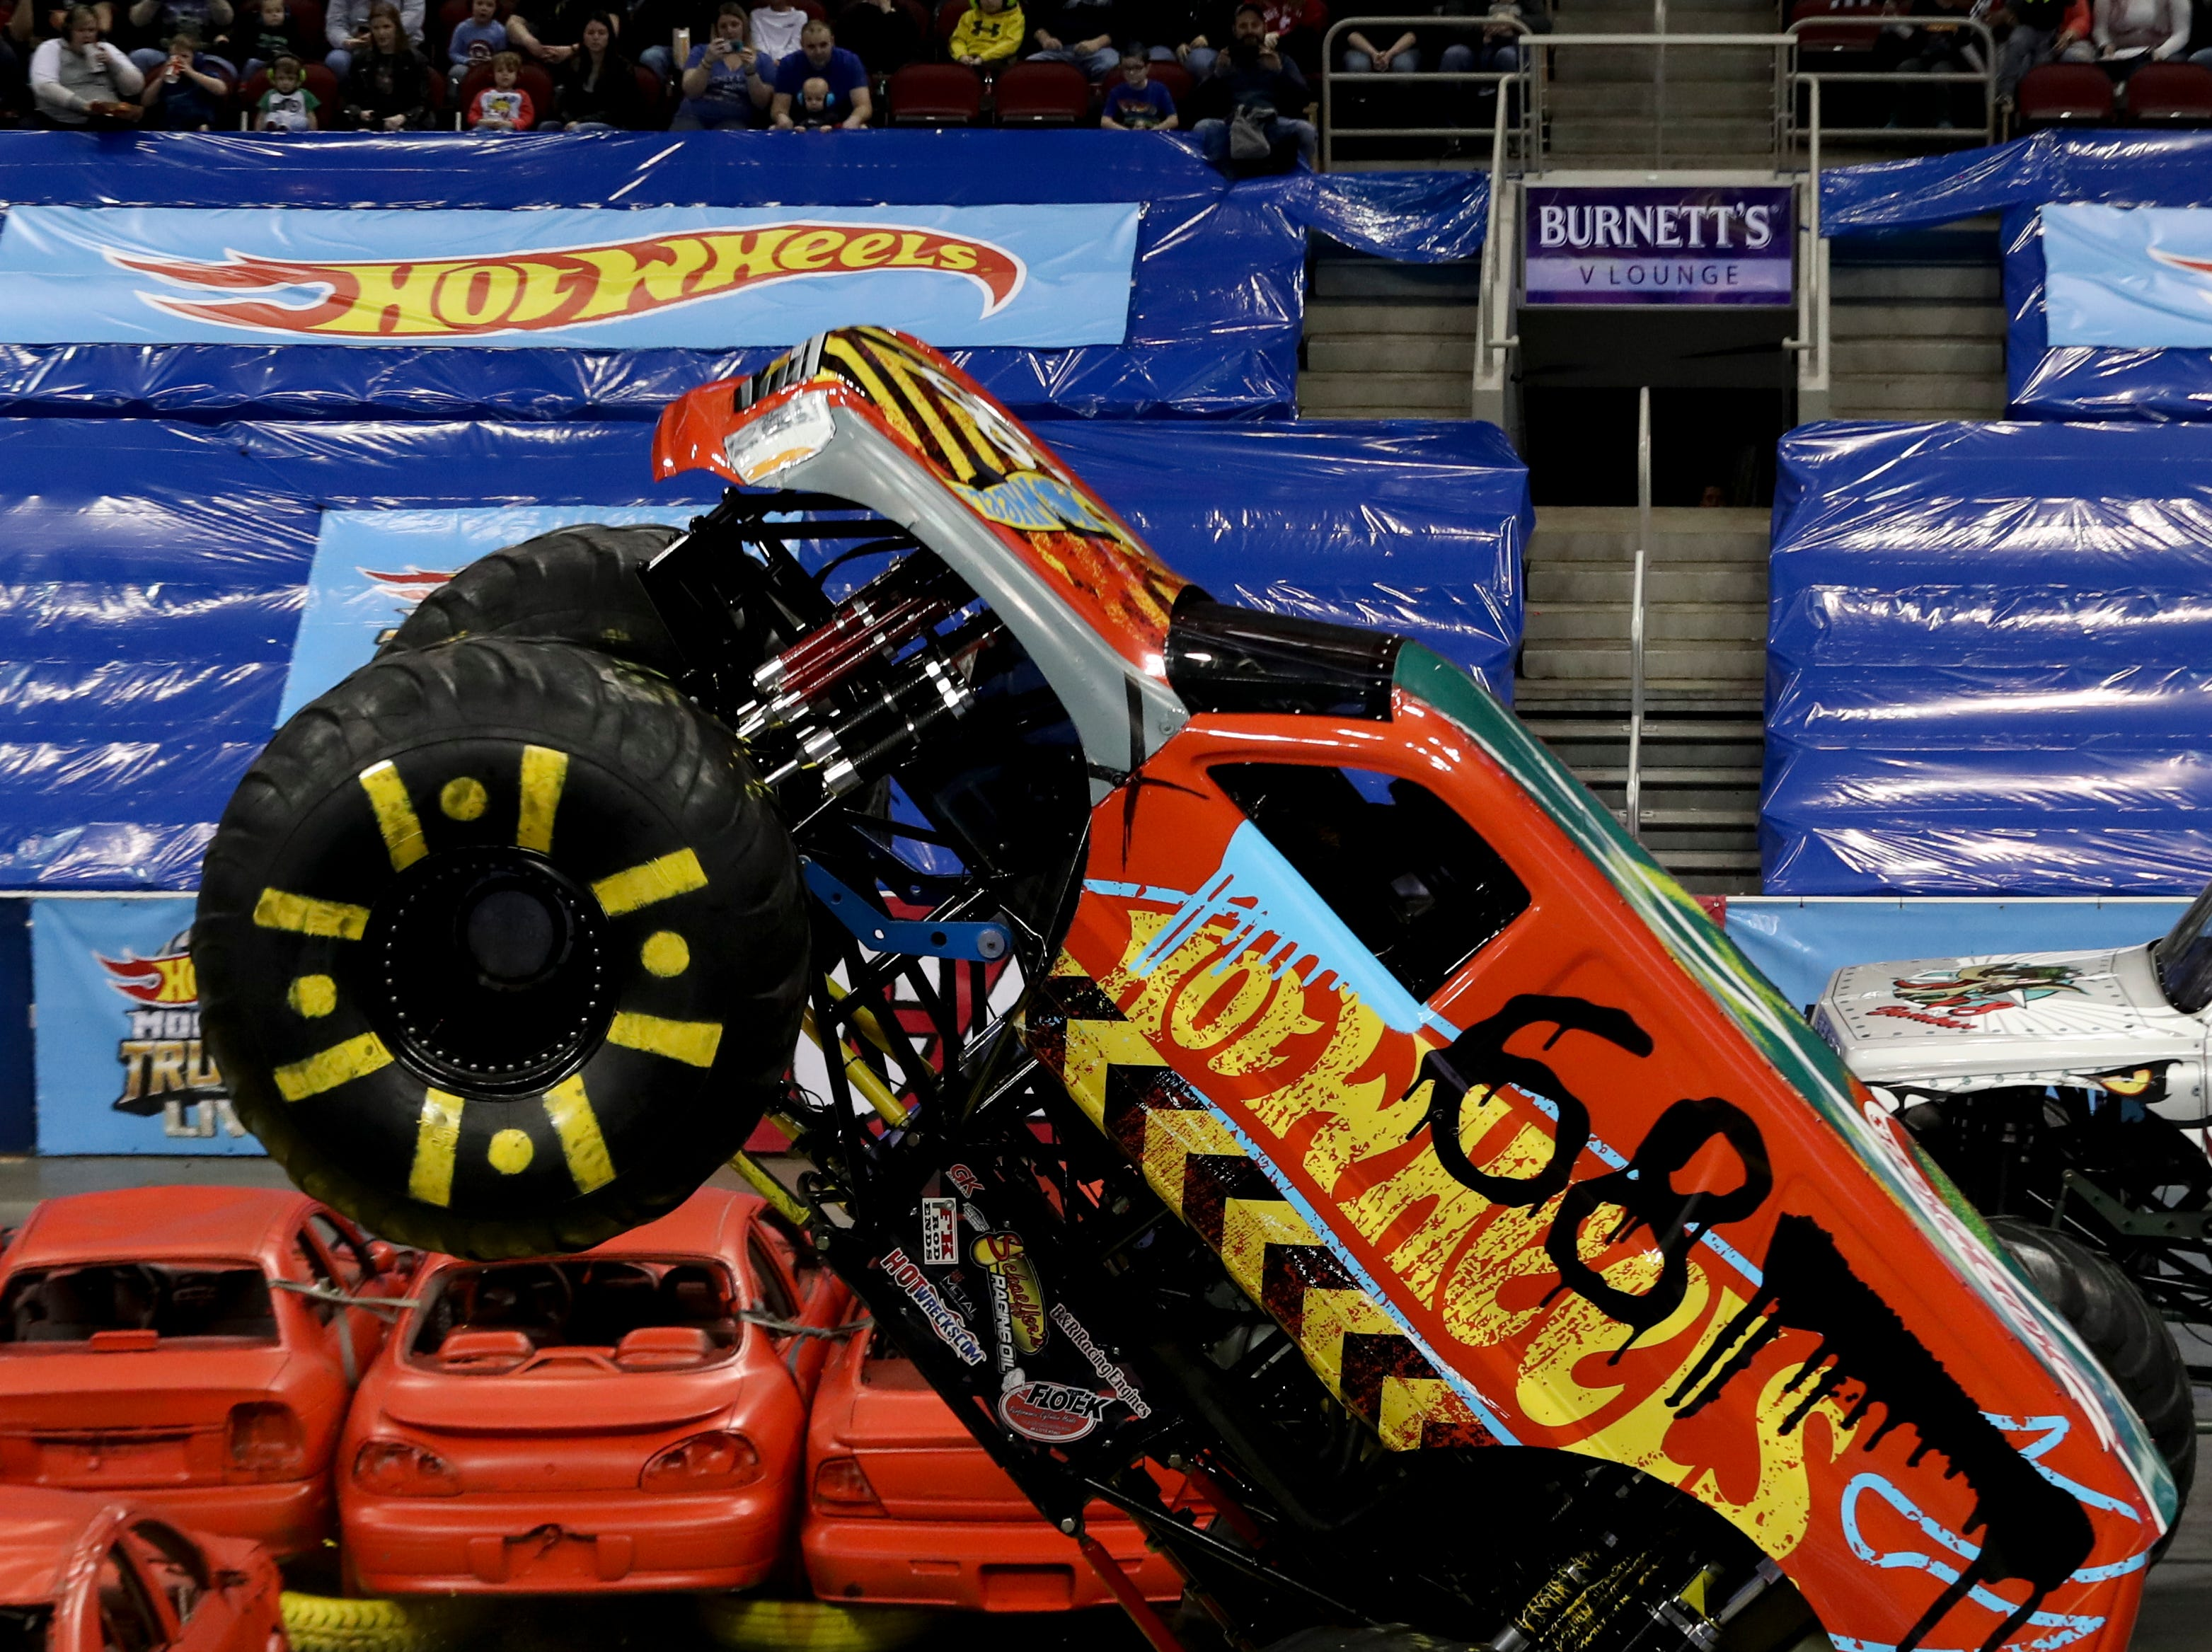 Louisville local Derick Anson, driver of Demo Derby, entertains the crowd at the Hot Wheels Monster Trucks show at the KFC Yum Center on March 16.